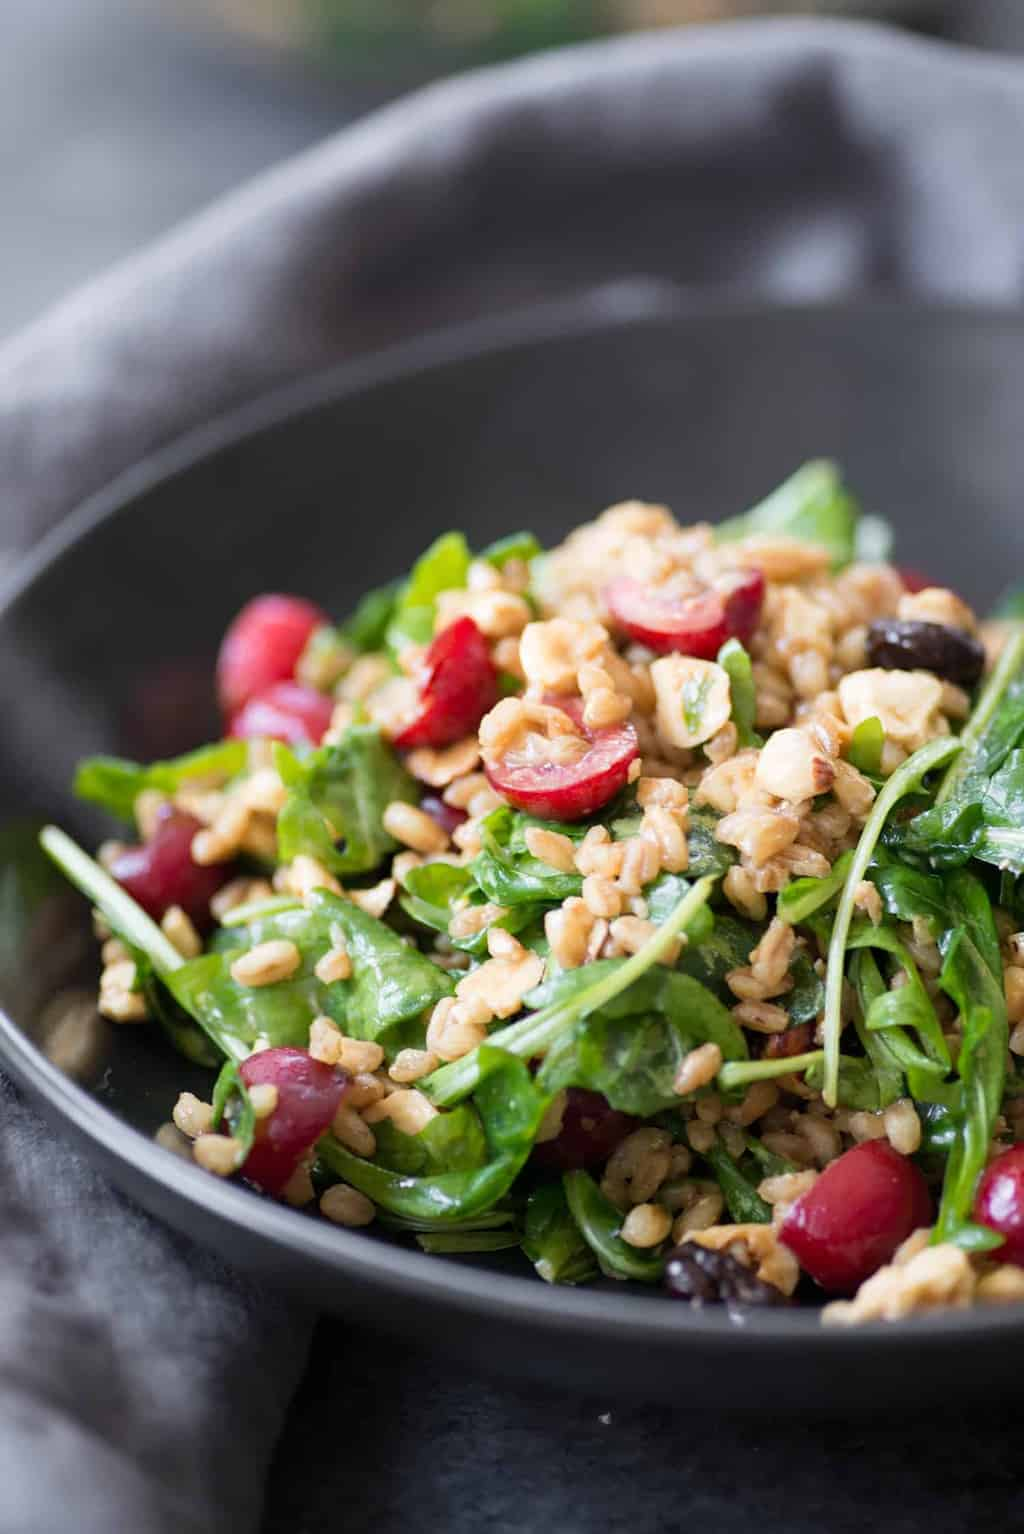 You've gotta try this sweet cherry and farro salad! A delicious potluck salad for summer. Fresh cherries, farro, arugula, hazelnuts, feta and a tangy molasses dressing. Vegetarian. | www.delishknowledge.com